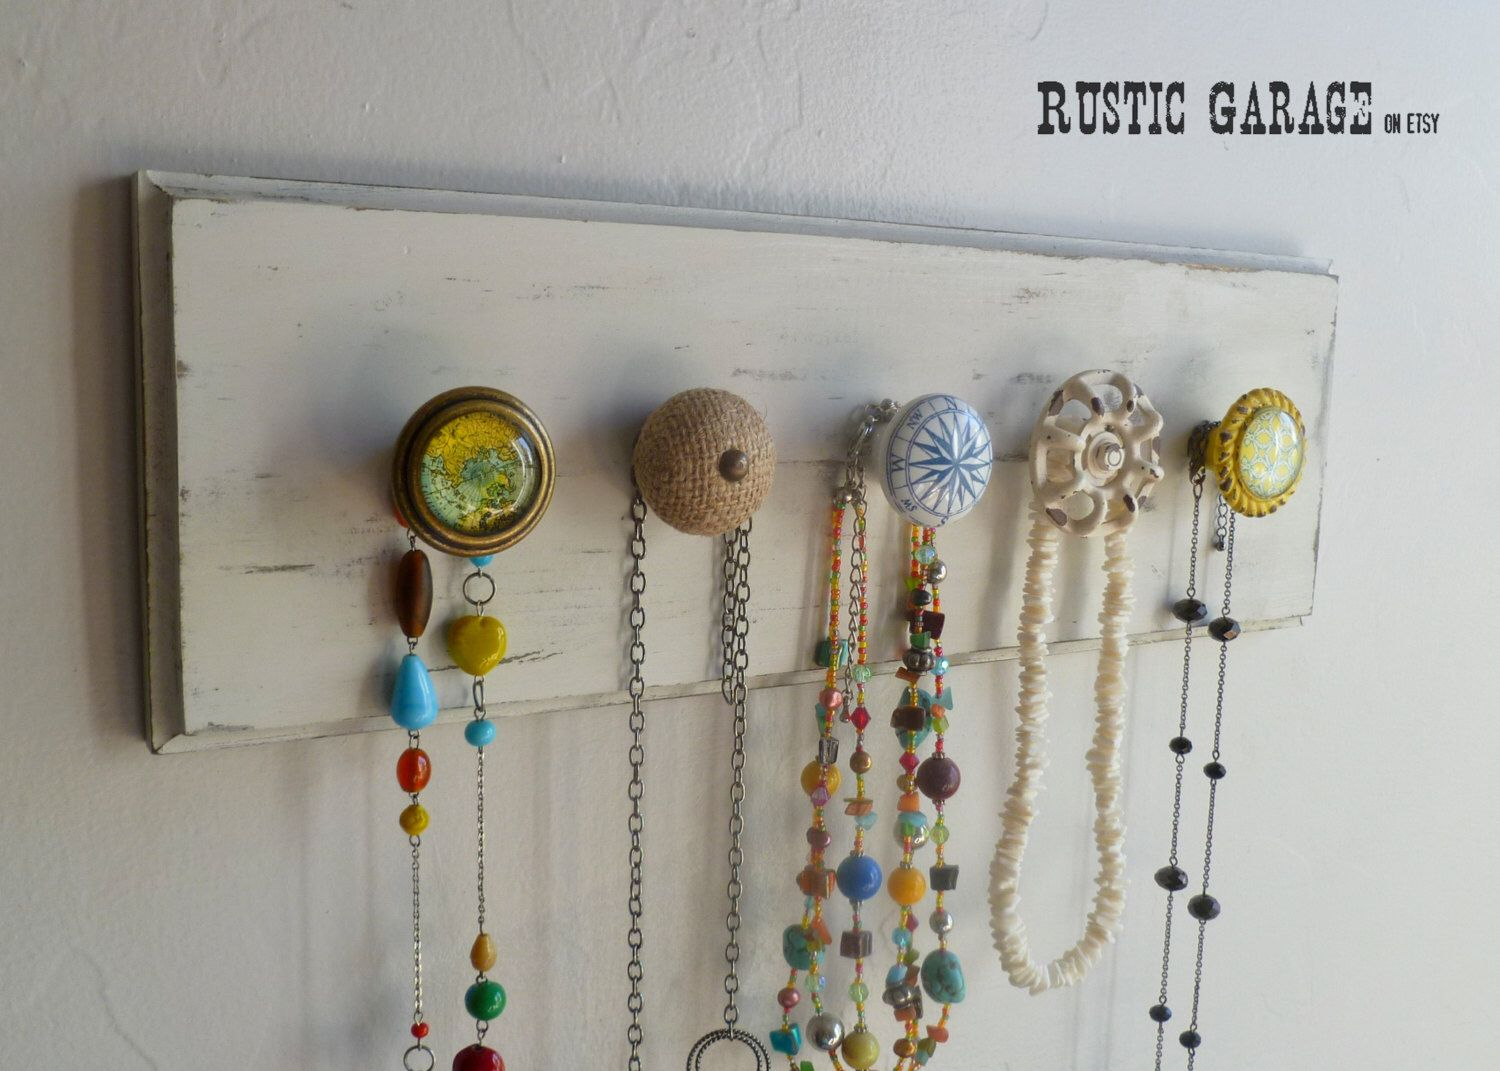 Travel Themed Nautical Rustic Knob Necklace Holder Eclectic Shabby